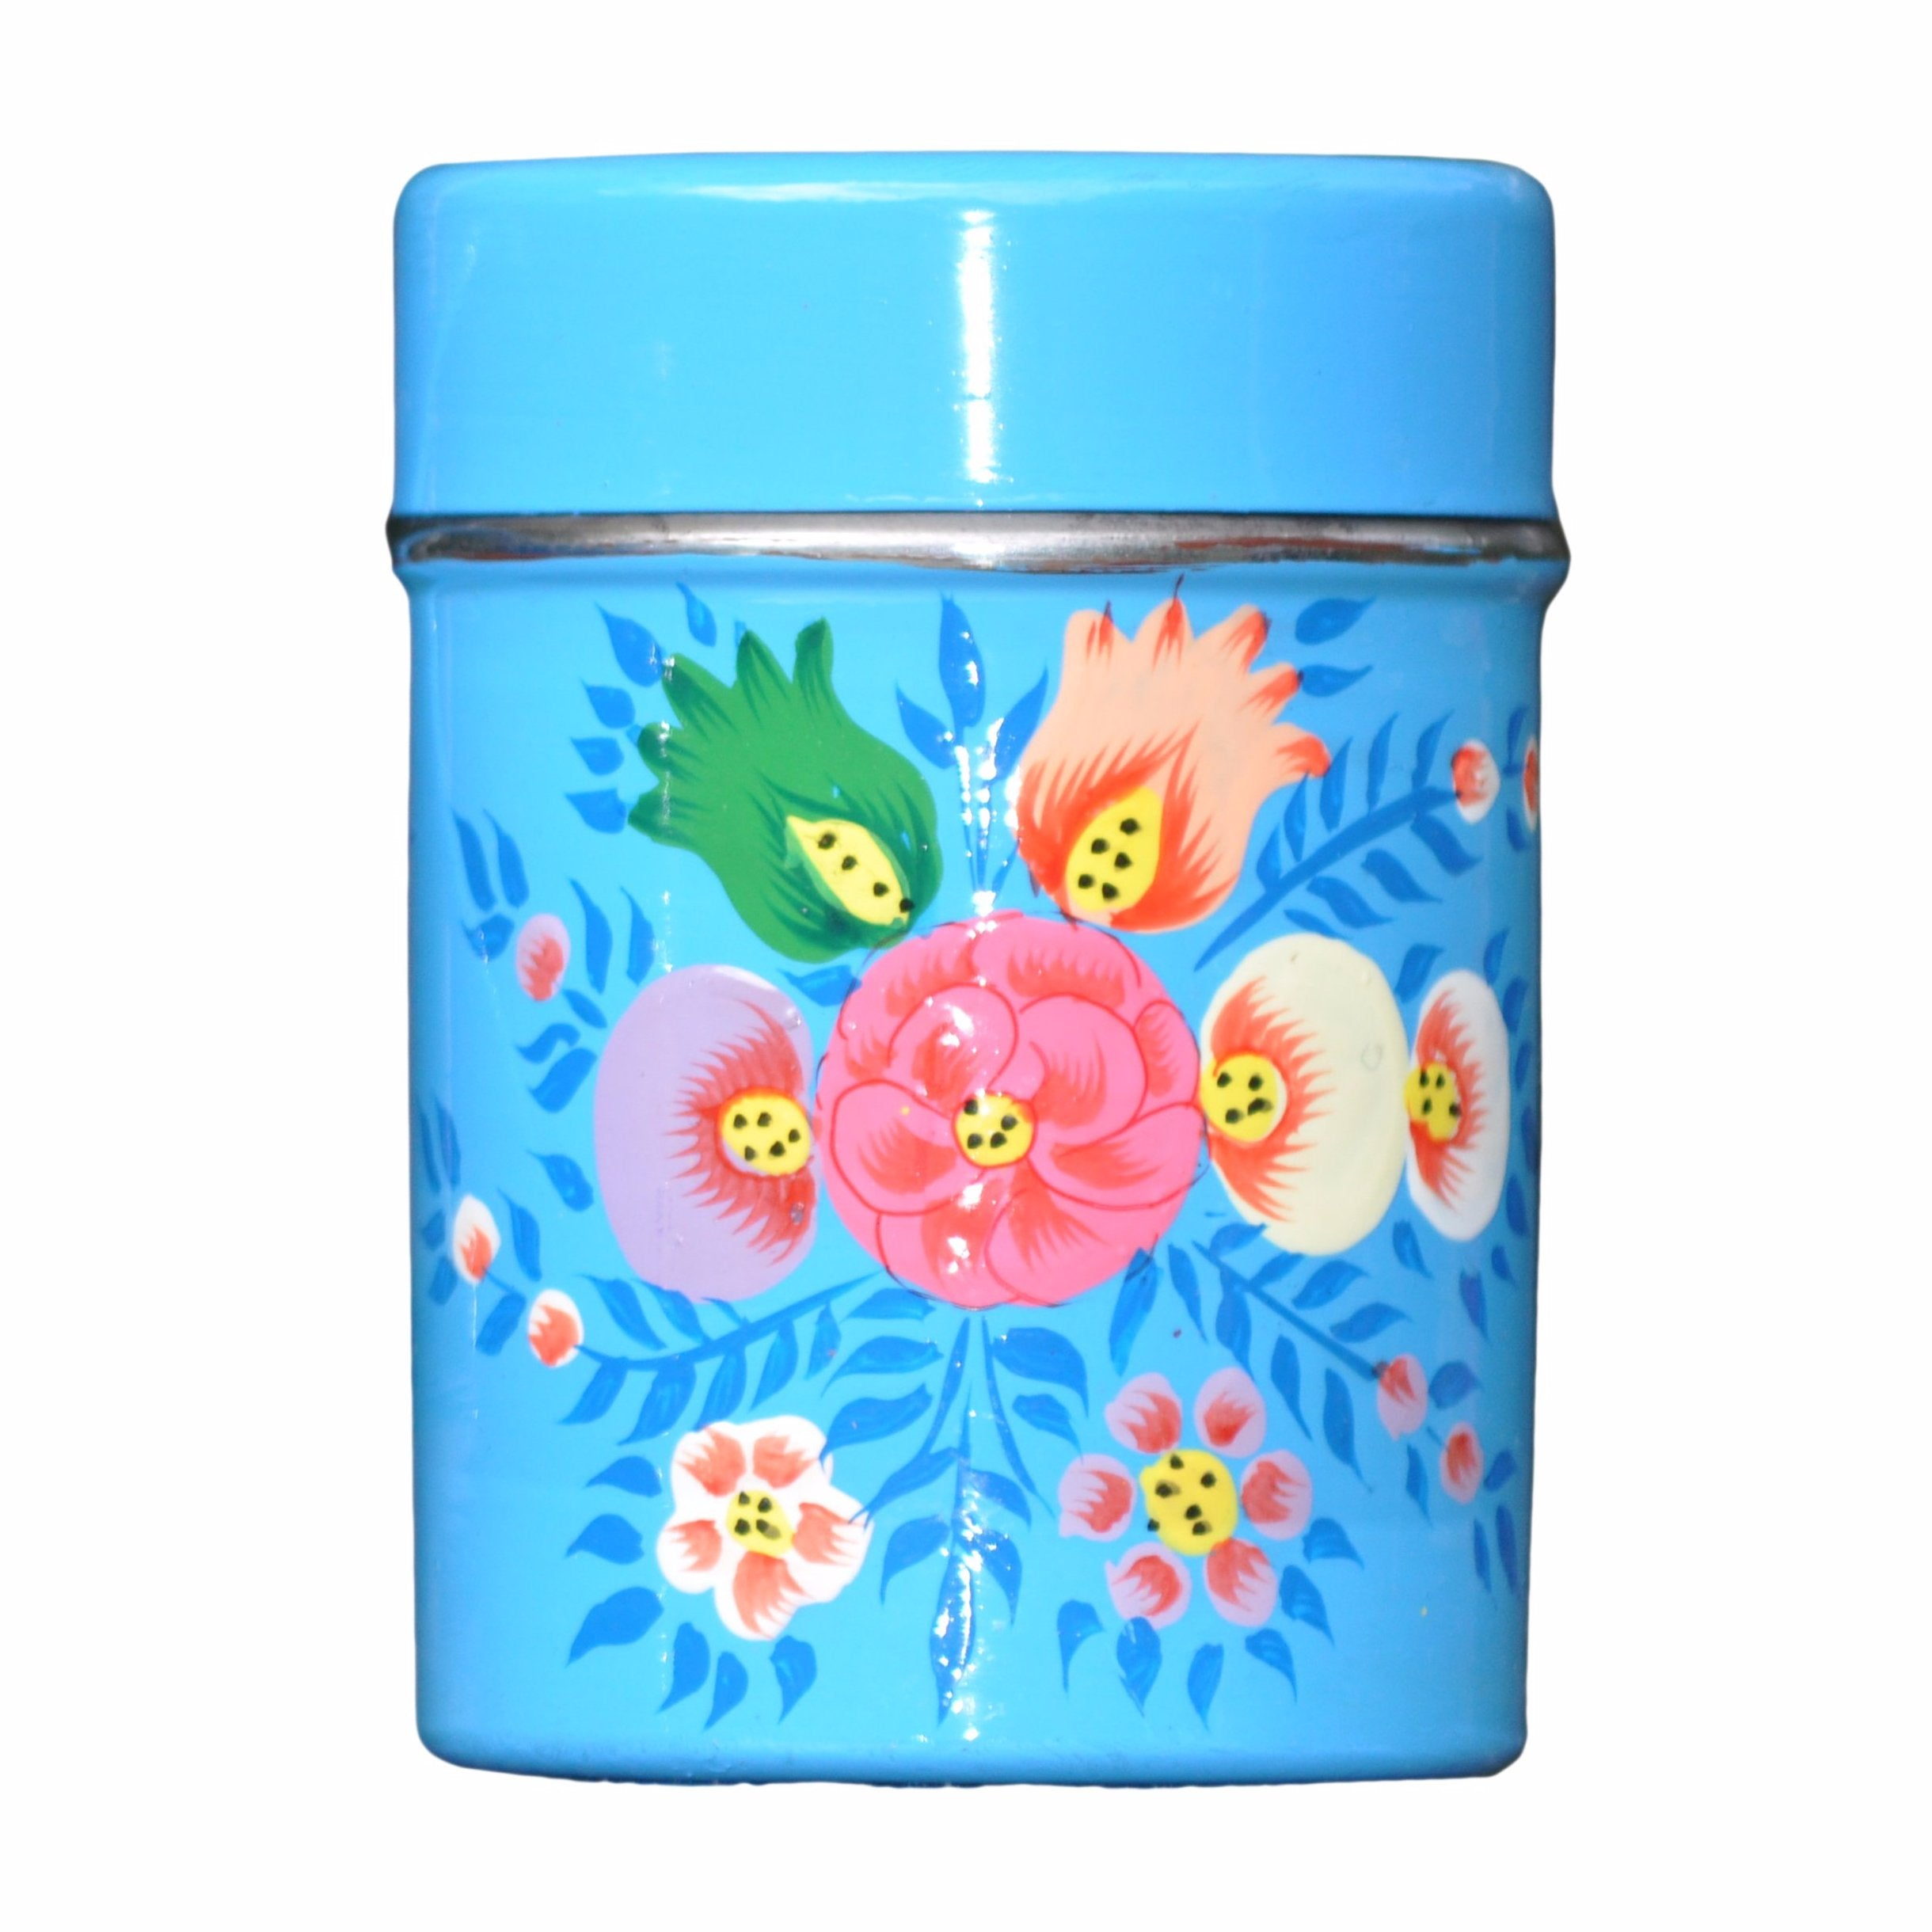 Bright Blue Tea Caddy by Jasmine White on OOSTOR.com